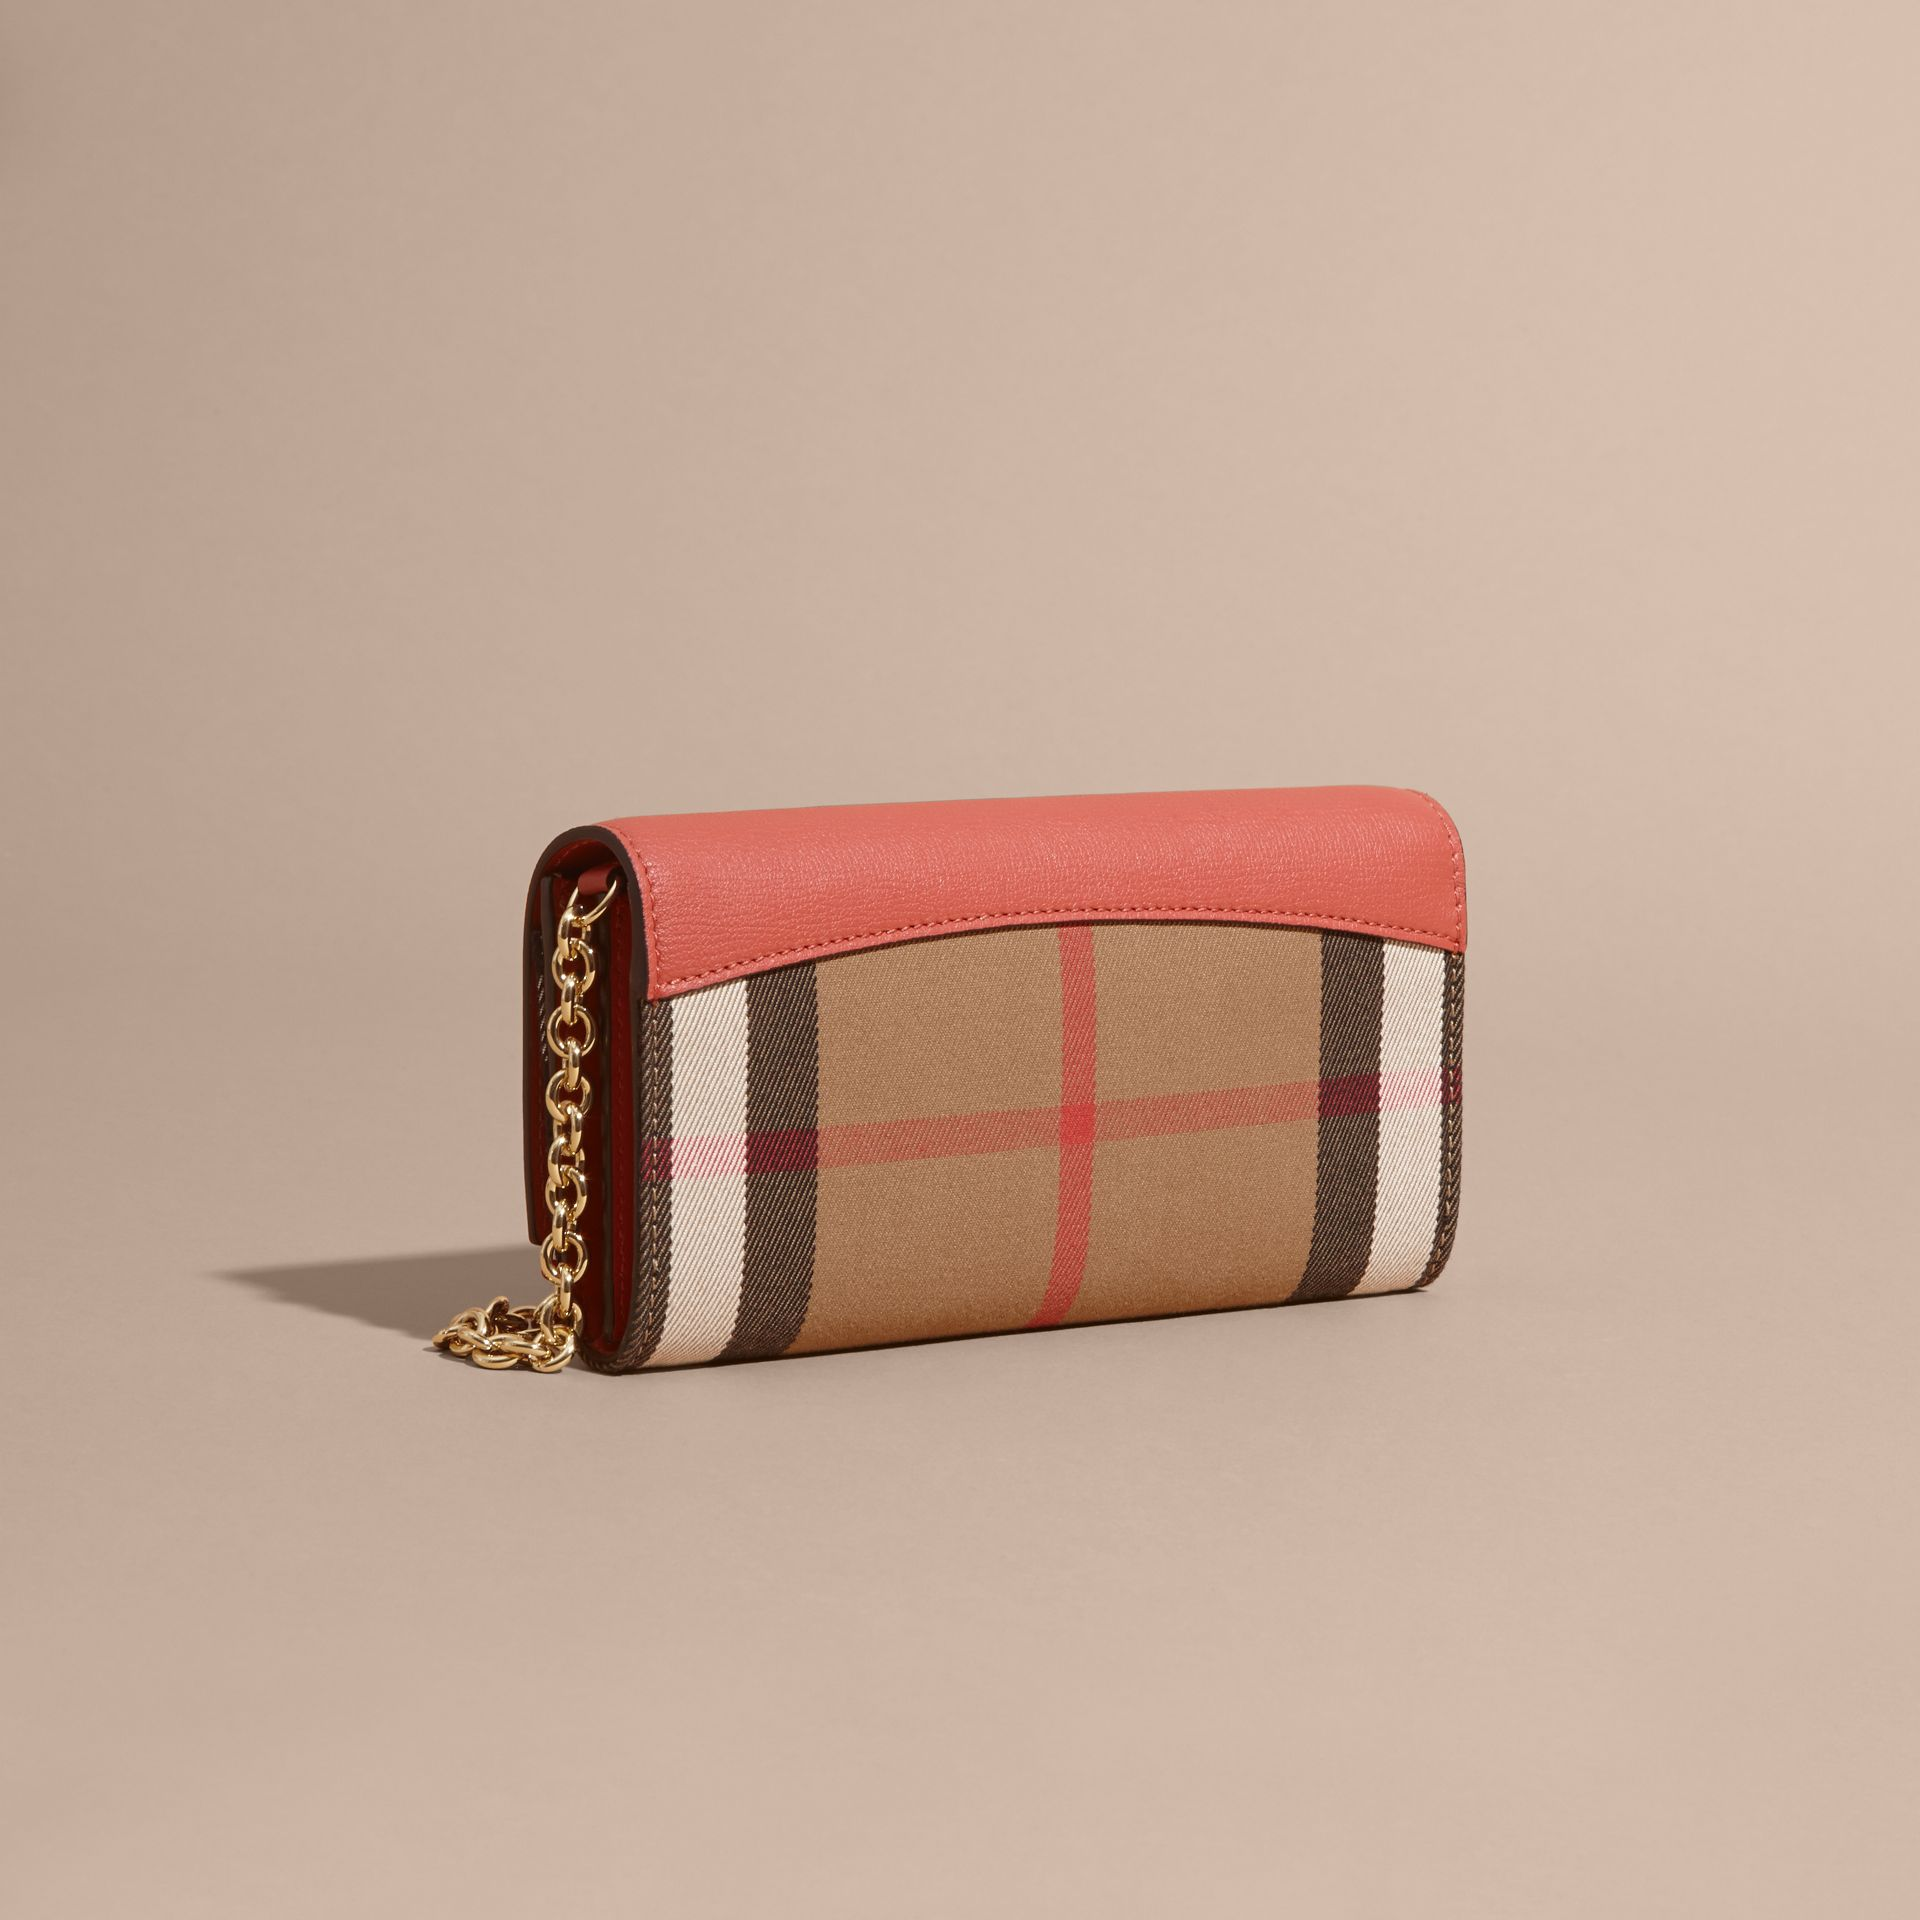 House Check and Leather Wallet with Chain in Cinnamon Red - Women | Burberry Canada - gallery image 4